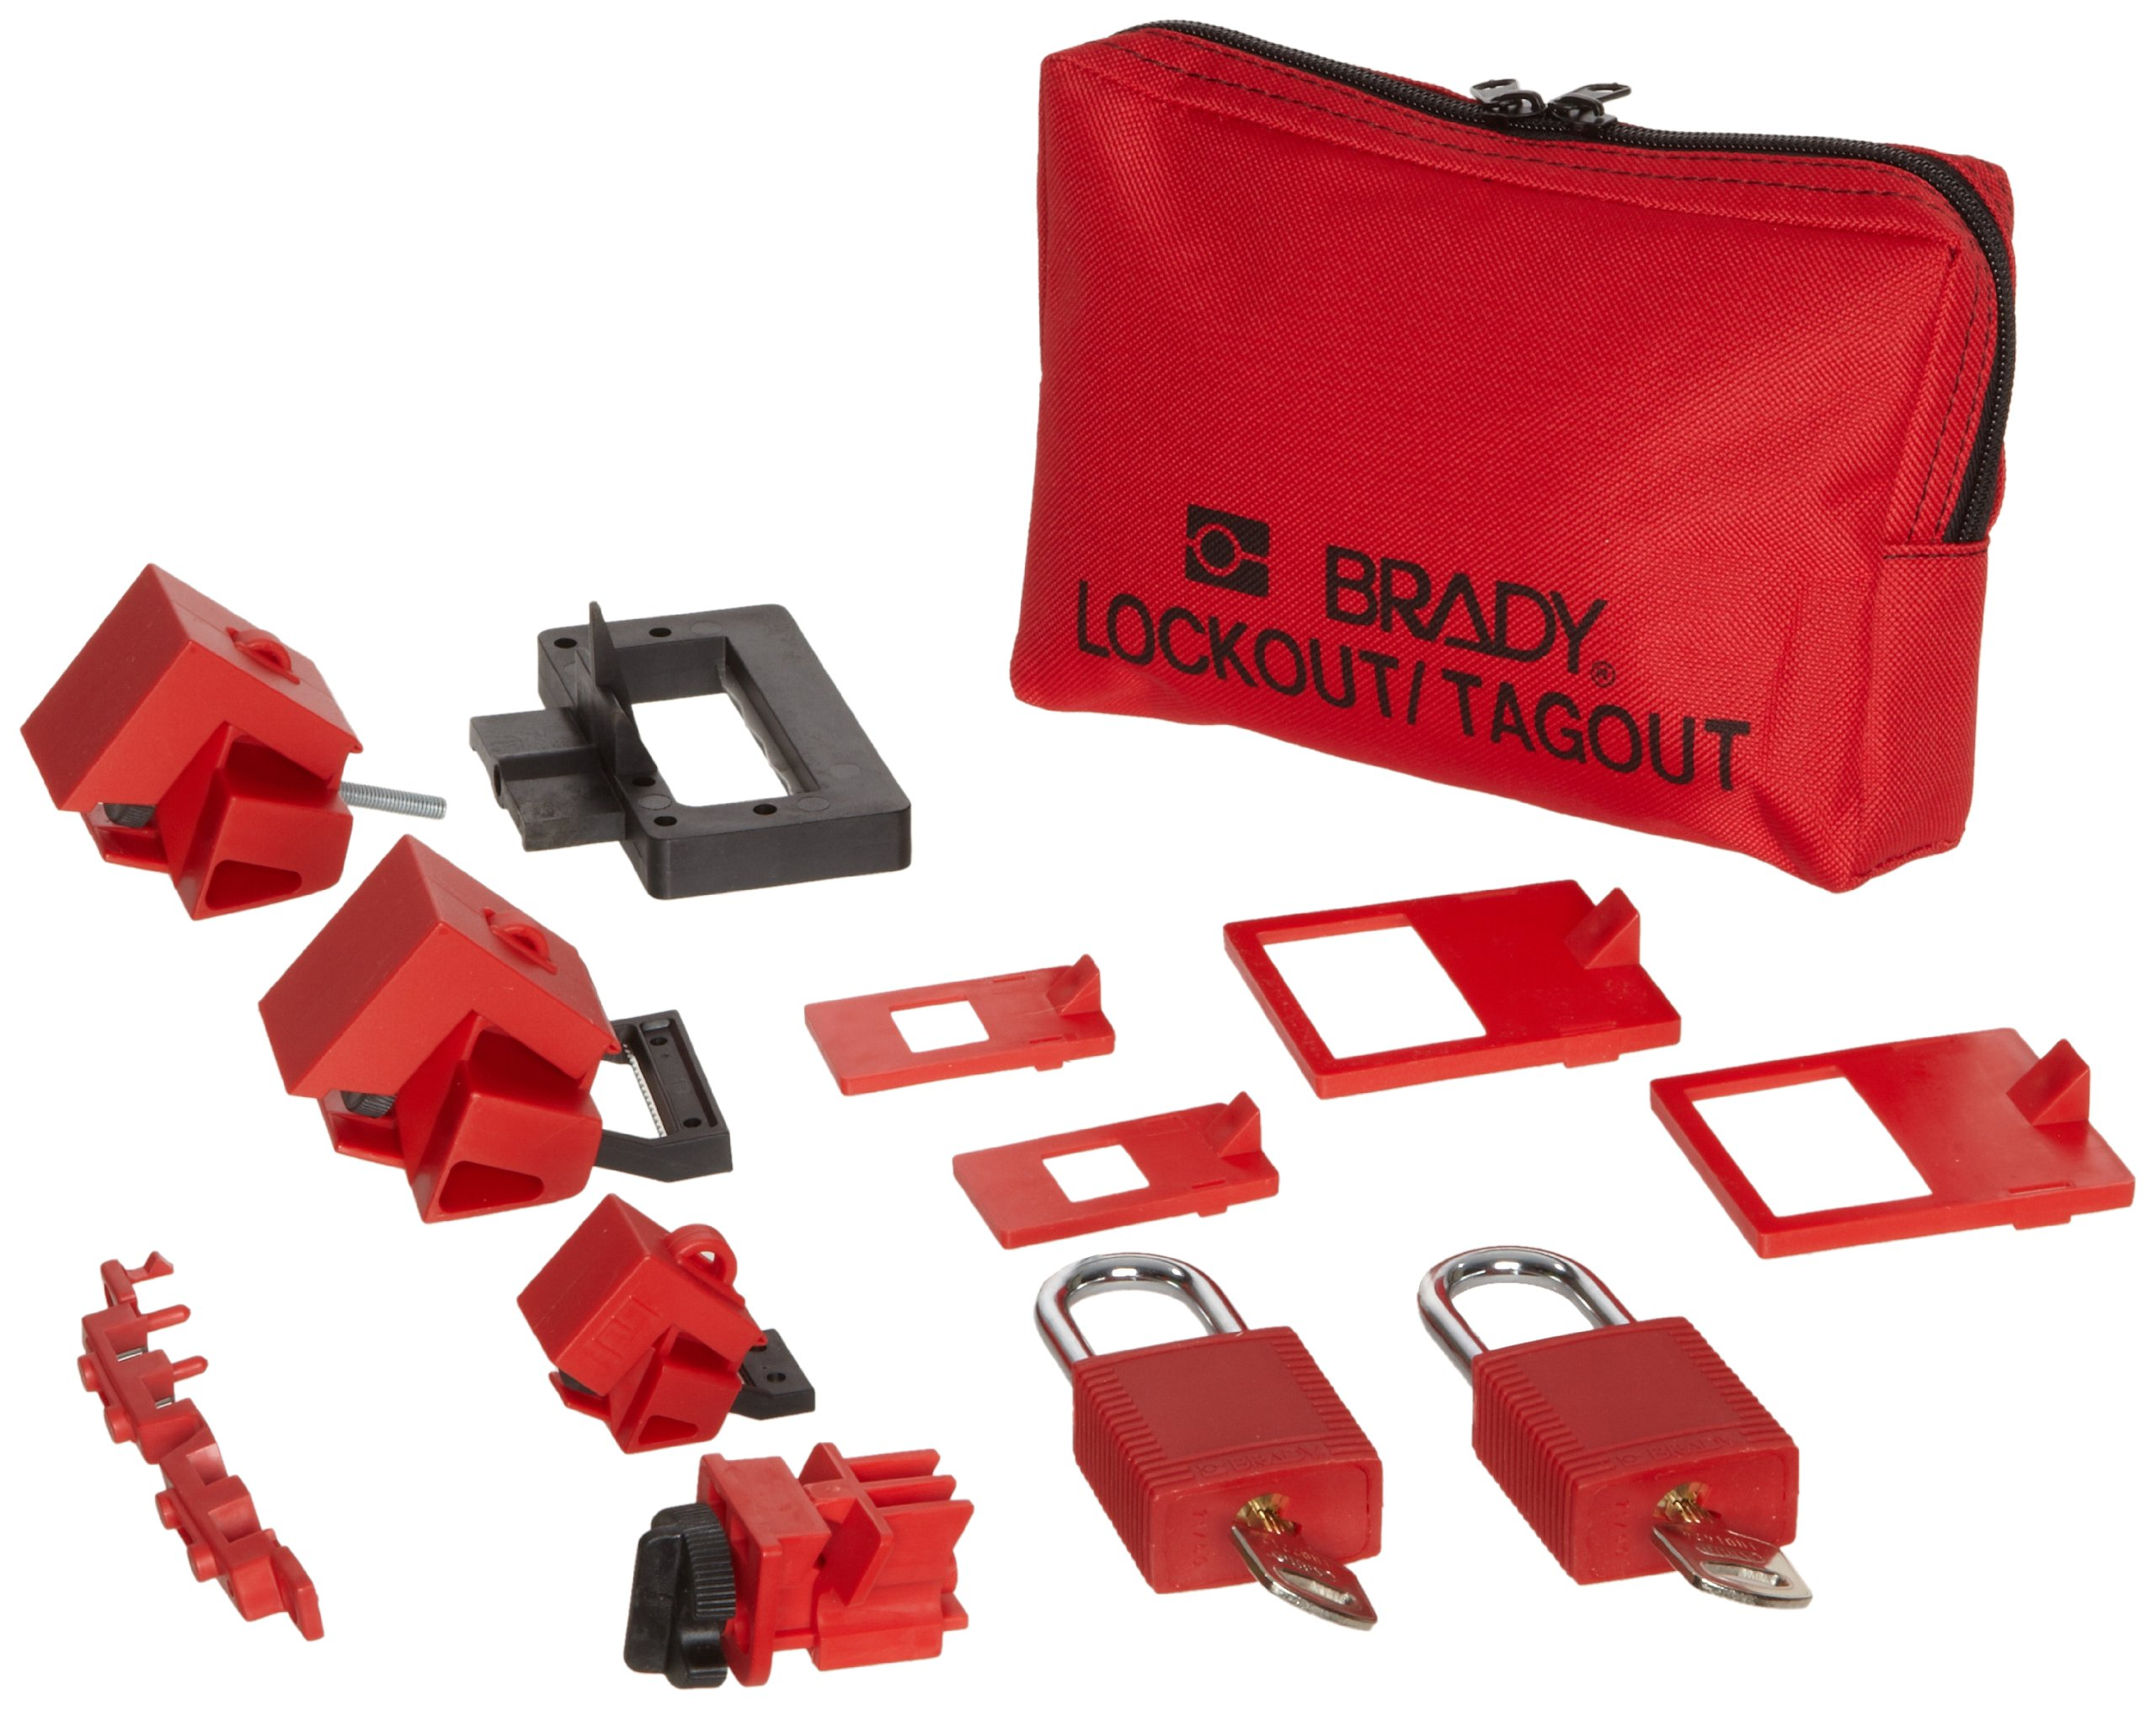 Brady Lockout Sampler Pouch Kit, includes 2 Safety Padlocks and 2 Tags - 99296 by Brady